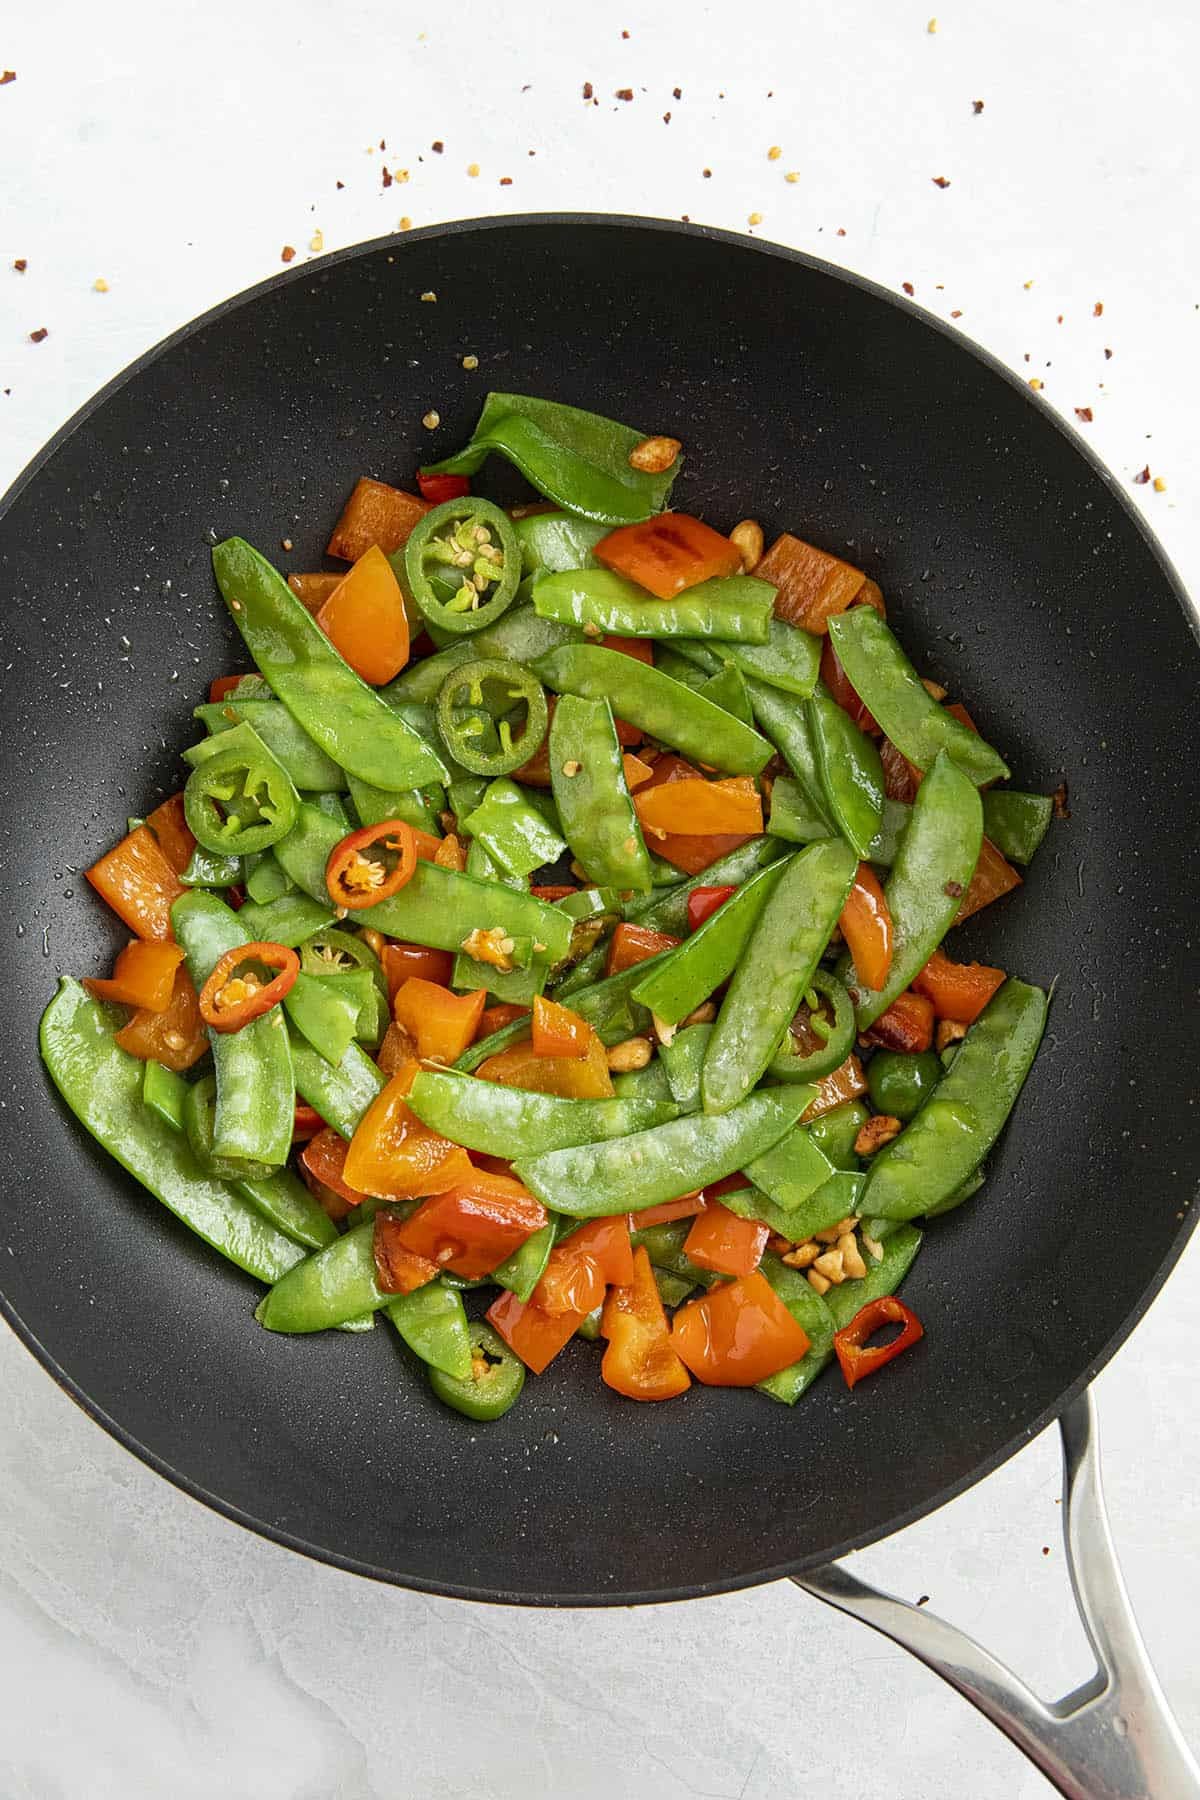 Cooking the vegetables in a hot pan